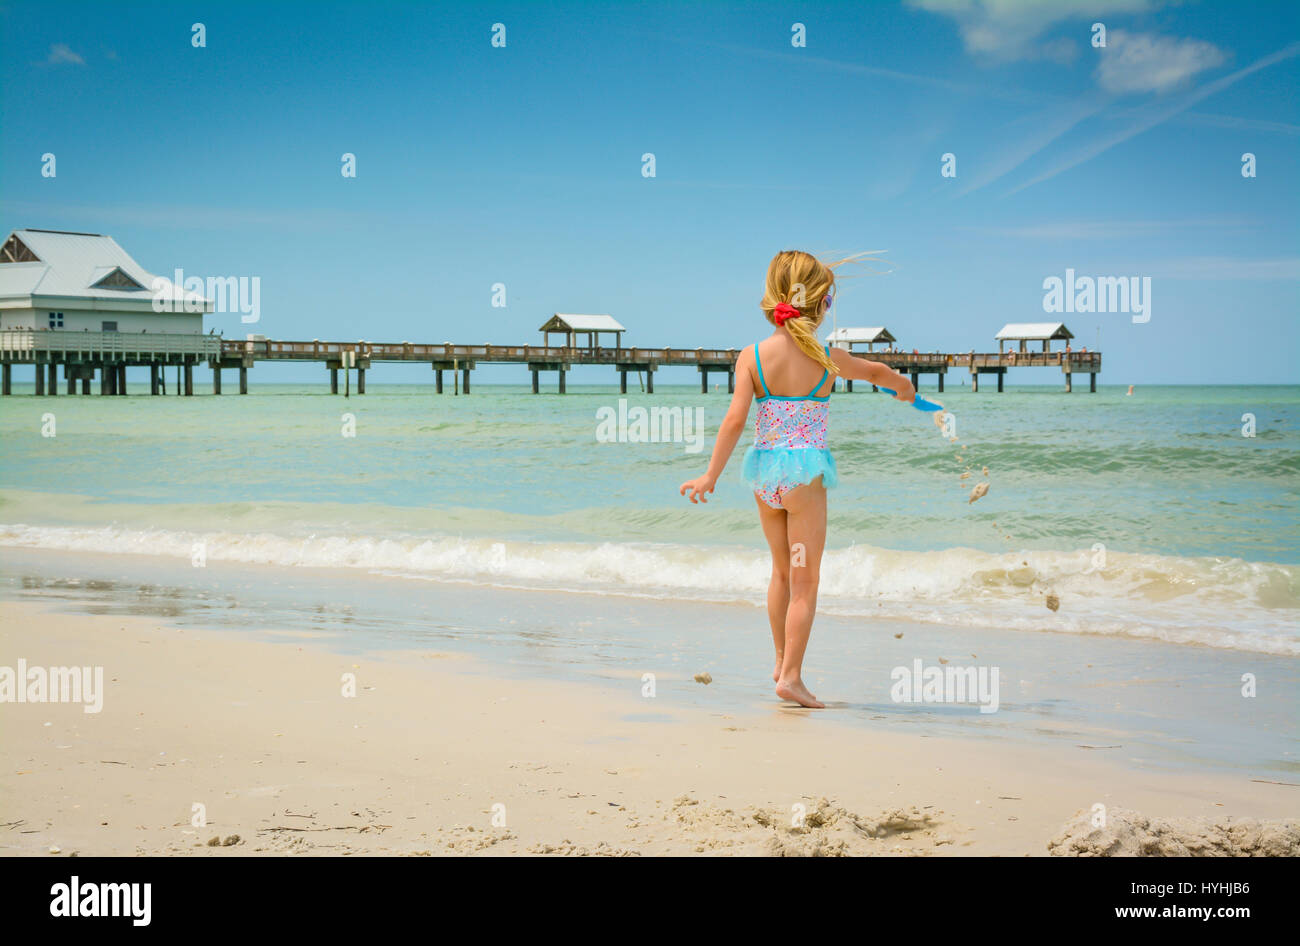 Rear view of young blond girl in blue bathingsuit plays on white sand beach at Clearwater Beach, FL with Pier 60 - Stock Image